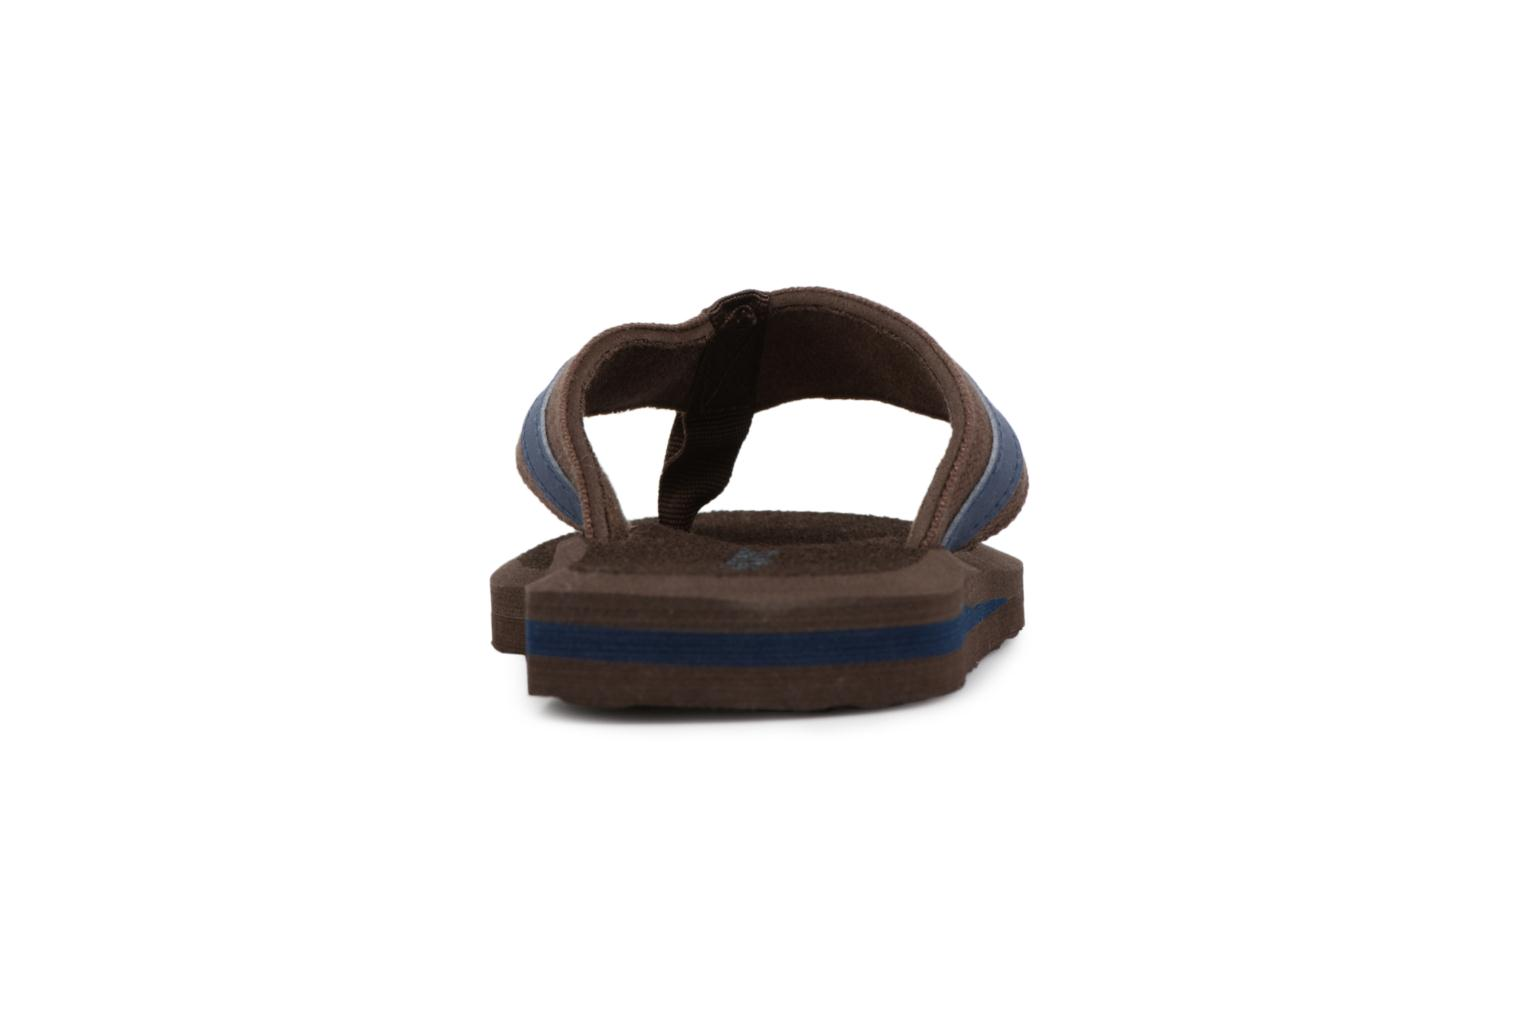 Tong Yoga confort marron